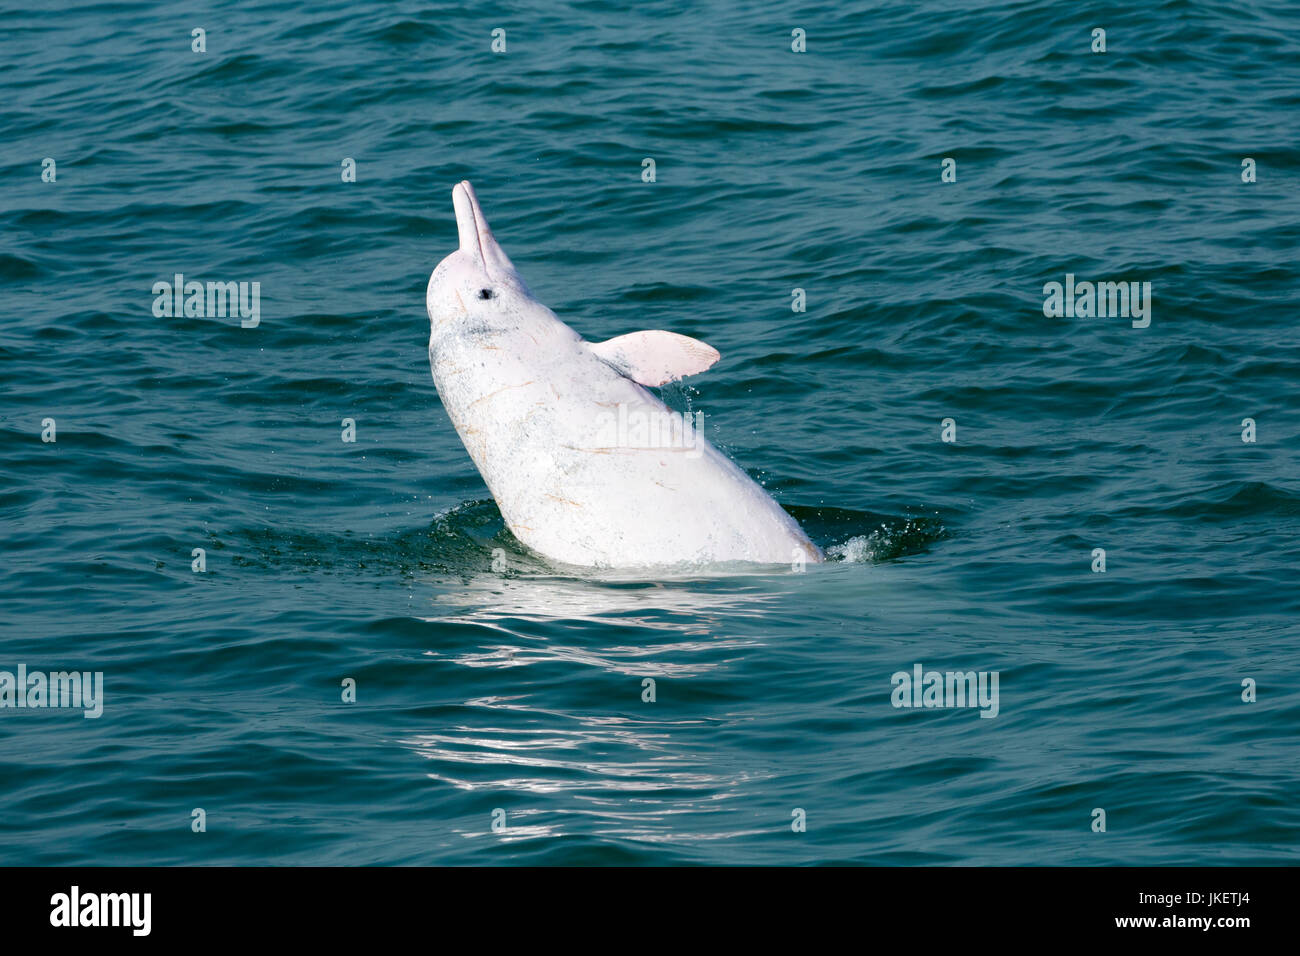 Indo-Pacific Humpback Dolphin (Sousa chinensis) leaping out with a side slap. This coastal species faces many threats - Stock Image